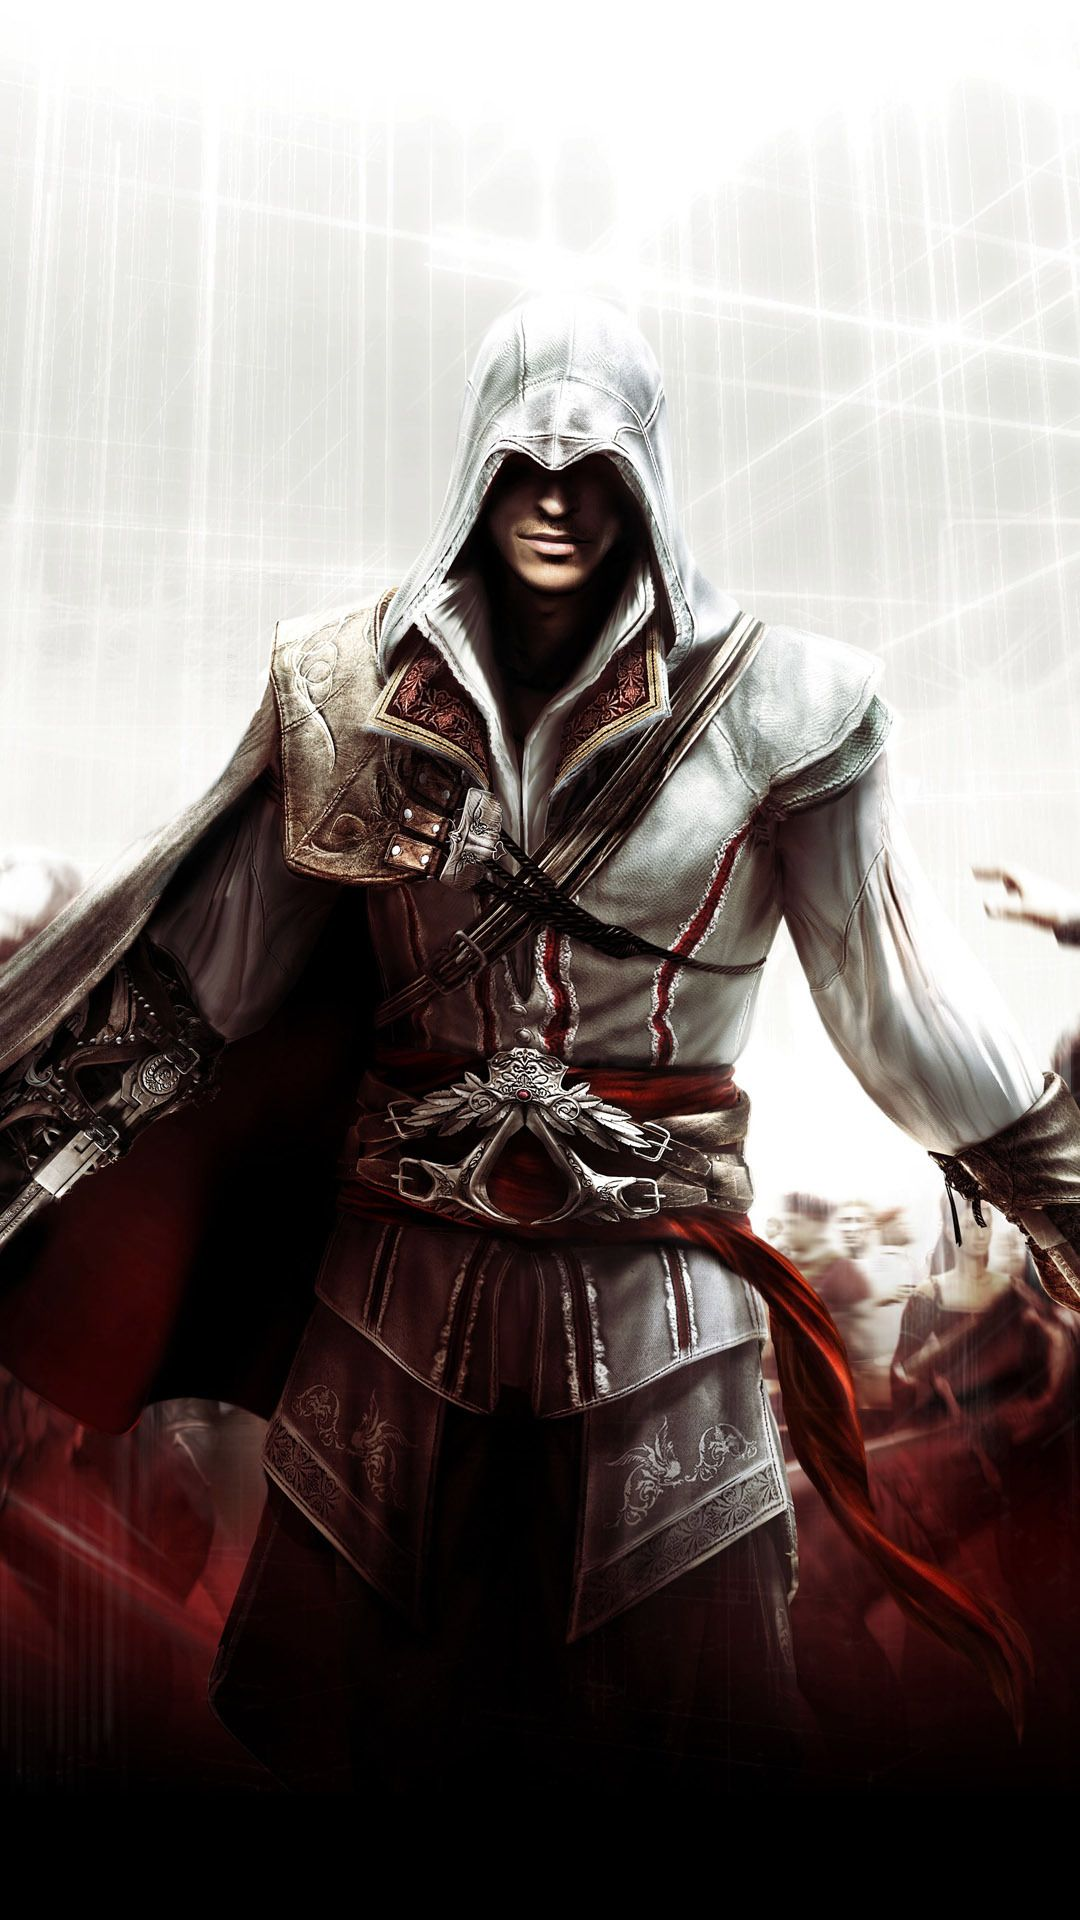 HD Assassins Creed Wallpaper for Iphone